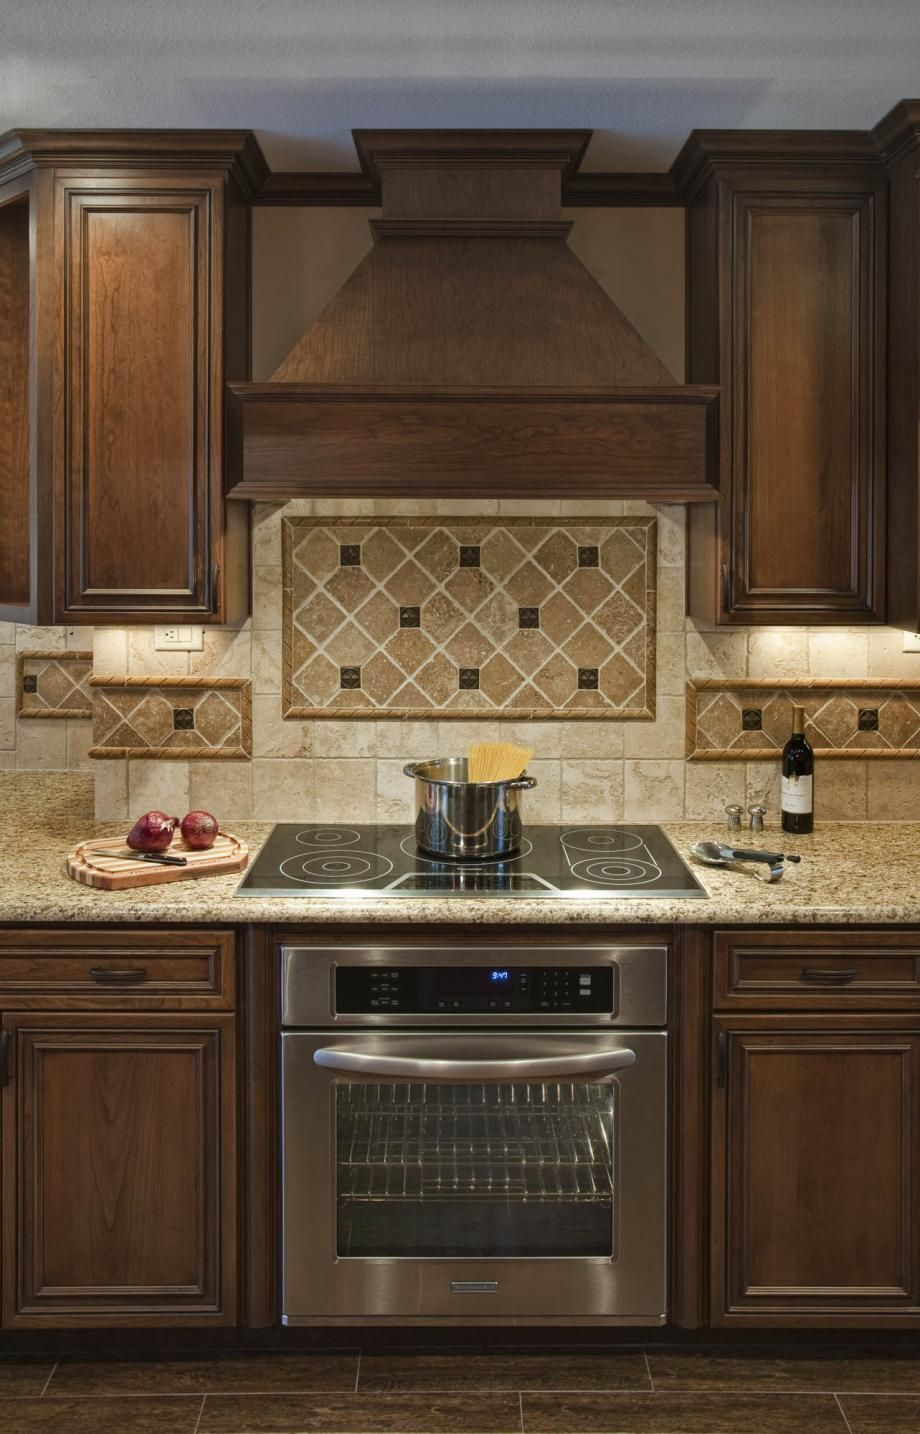 Backsplash ideas for under range hood tops along for Buy kitchen backsplash